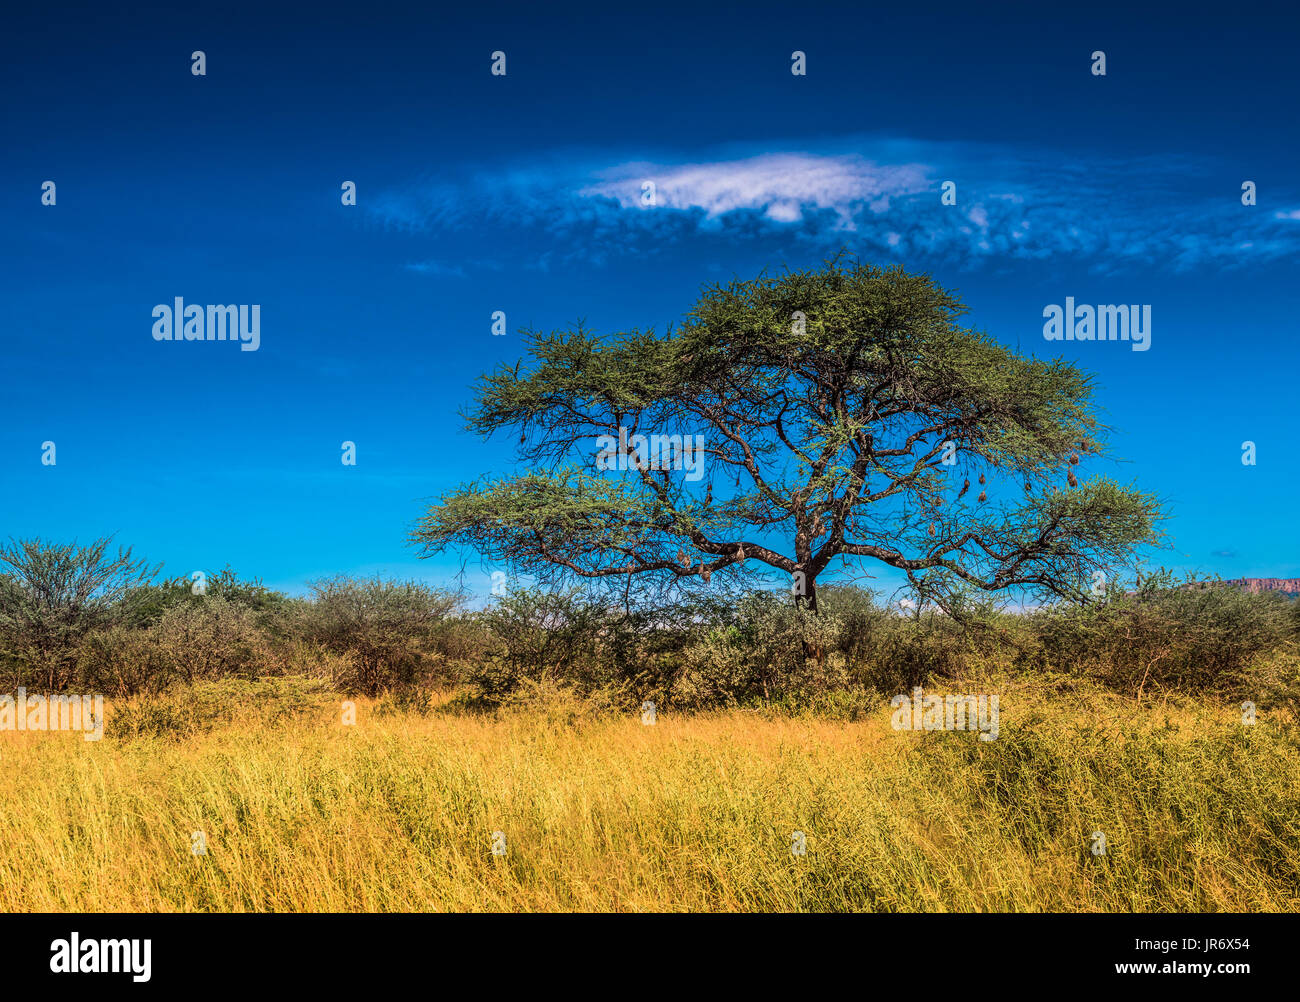 Tree in savannah, classic african landscape - Stock Image